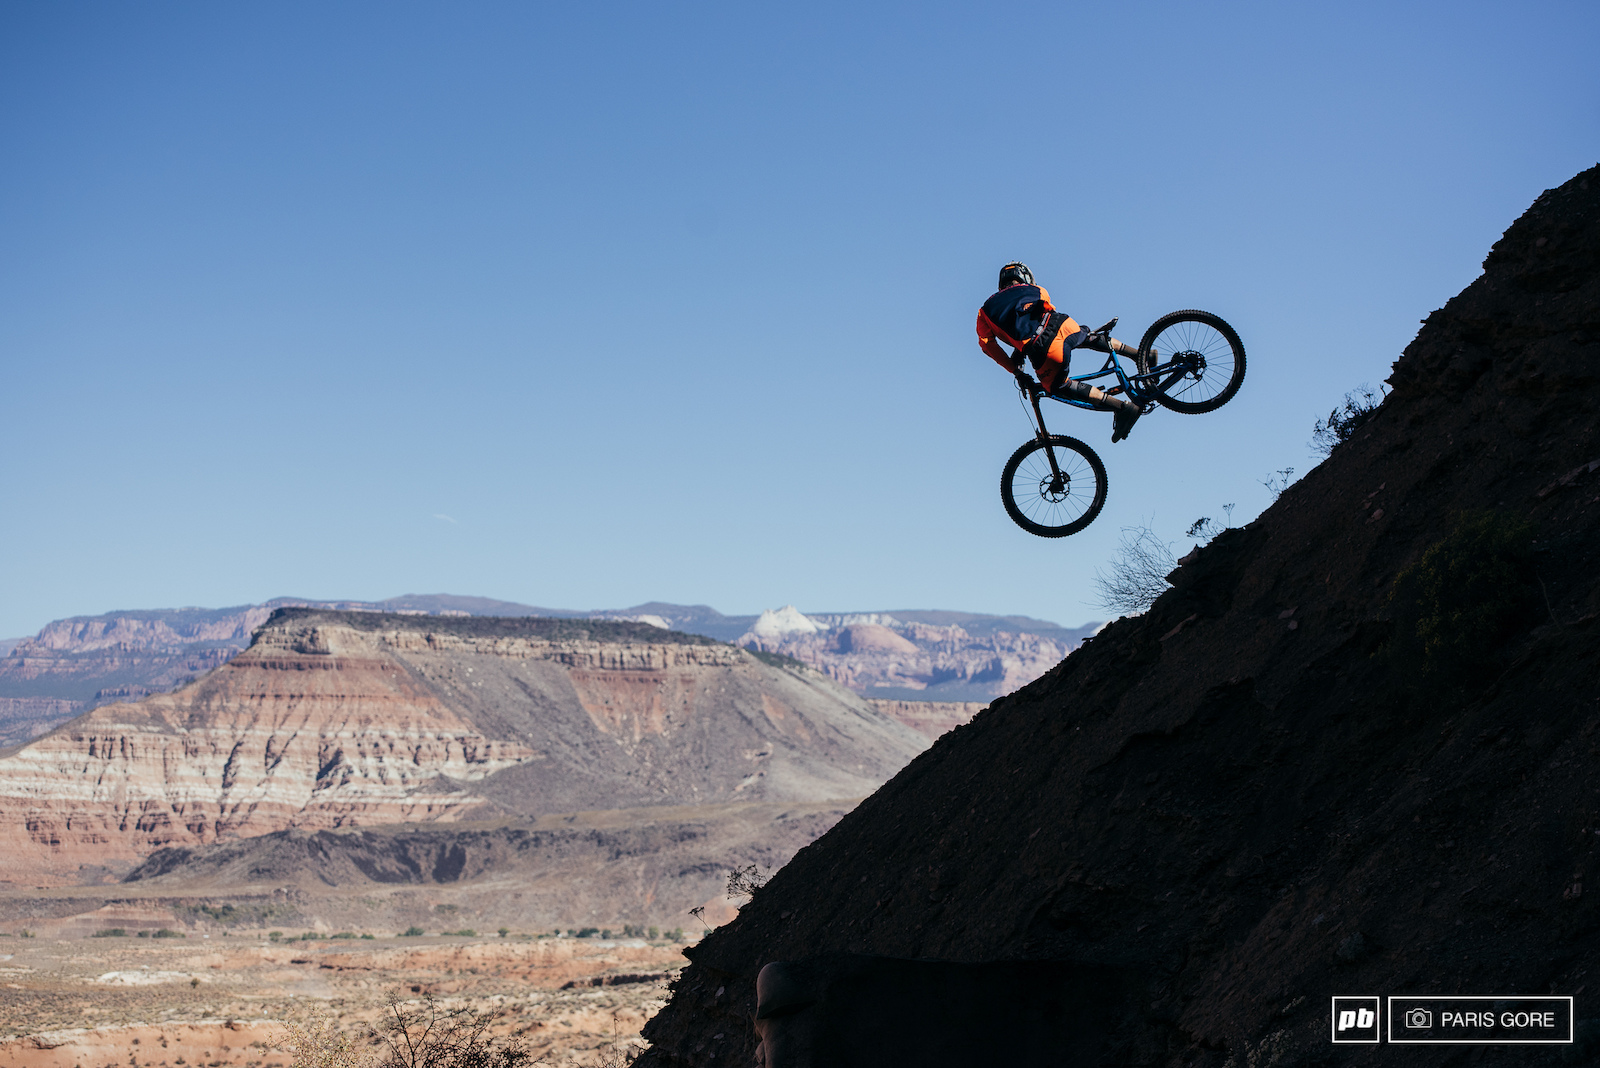 Bas Van Steenbergen whipping into the the cliffside.